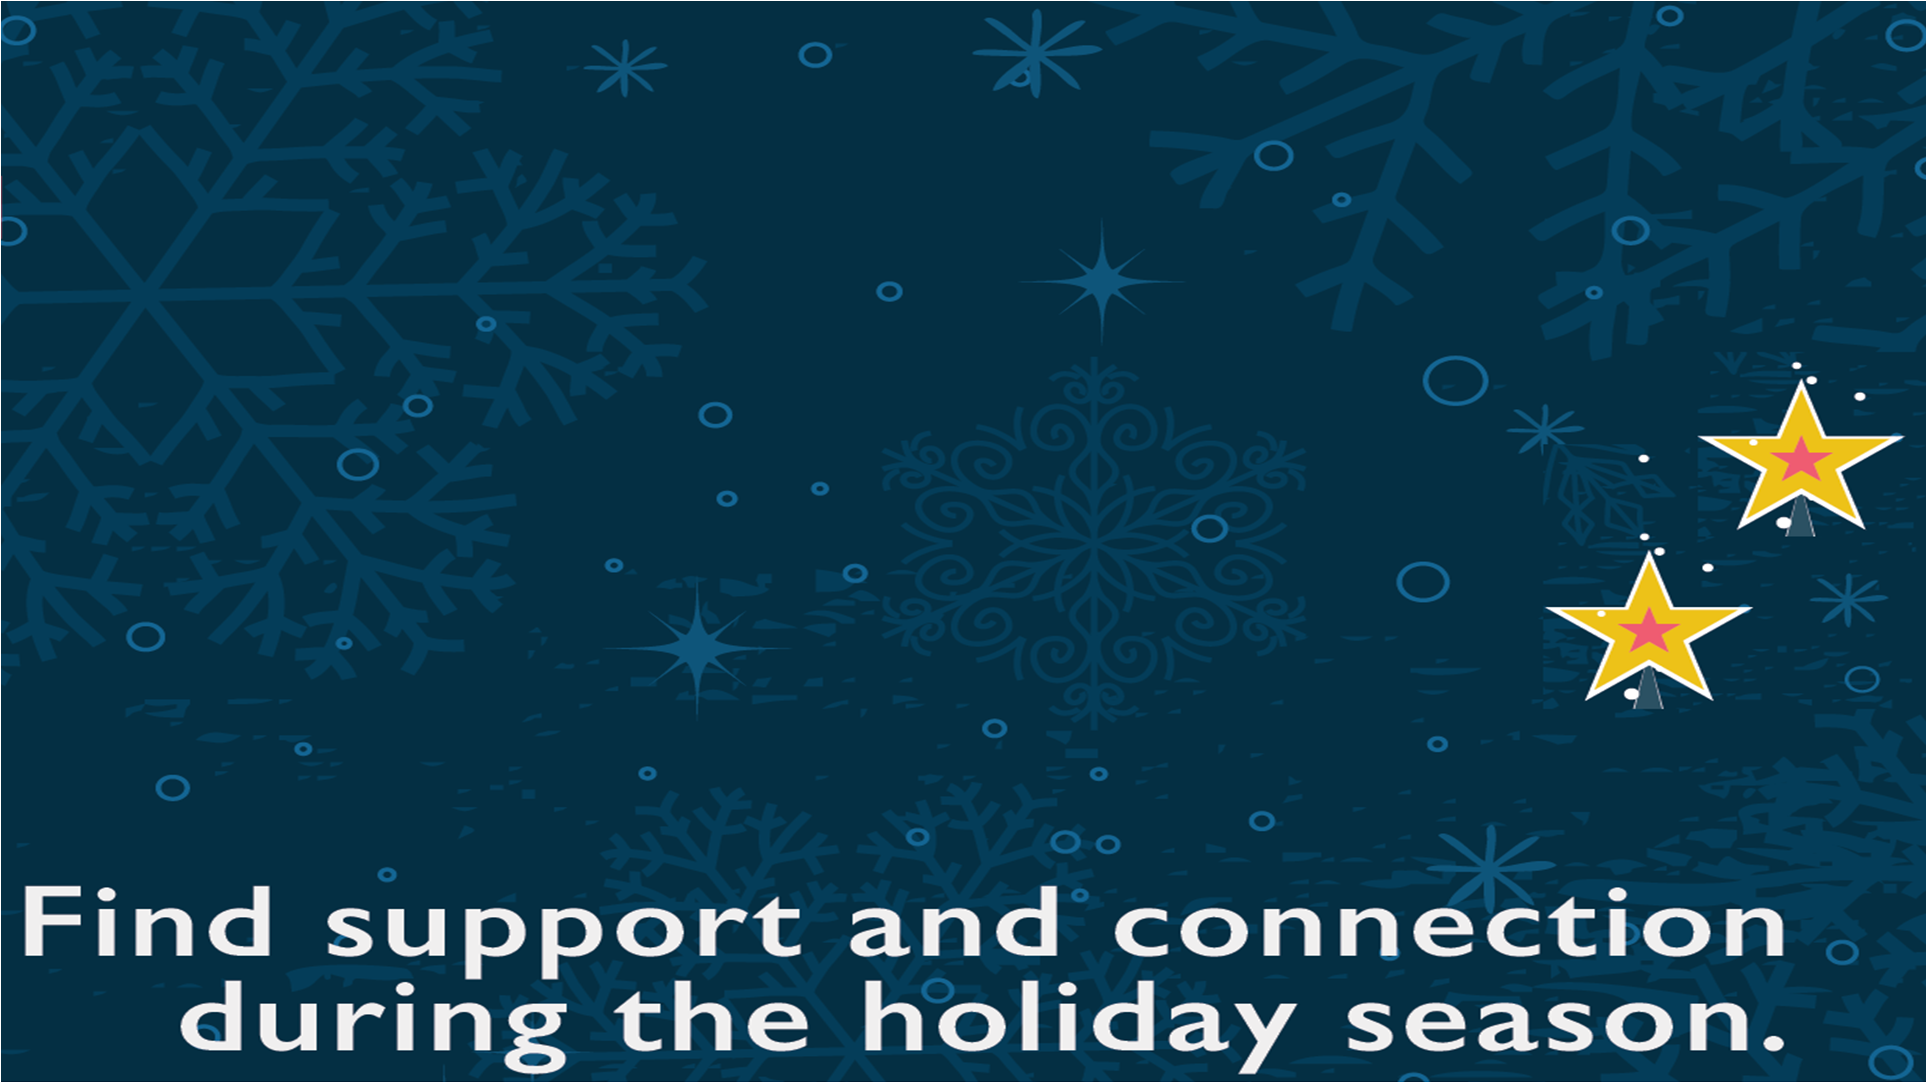 Graphic. Find support and connection during the holiday season.